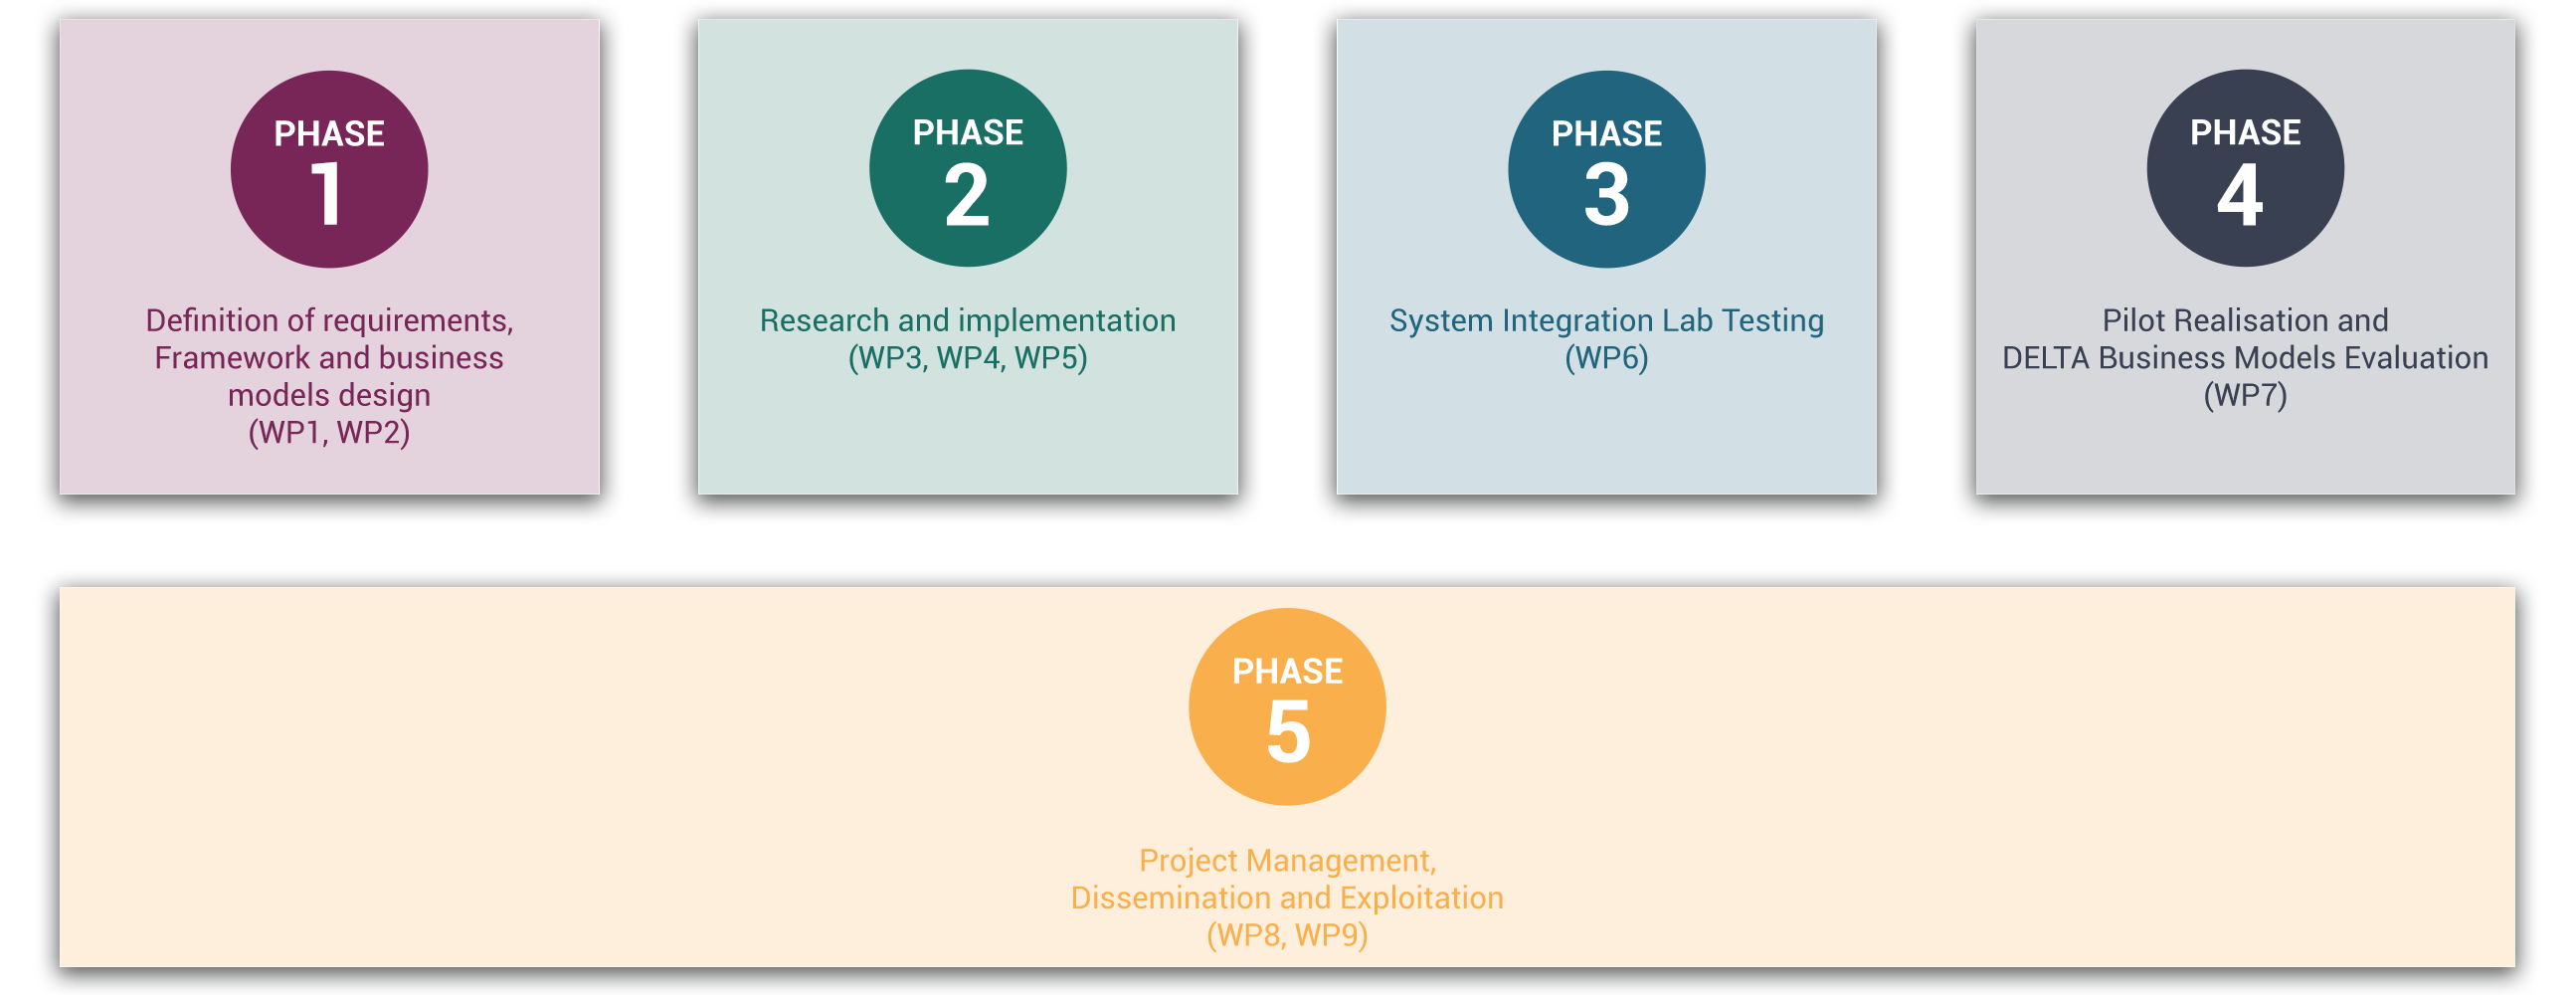 DELTA Project Phases